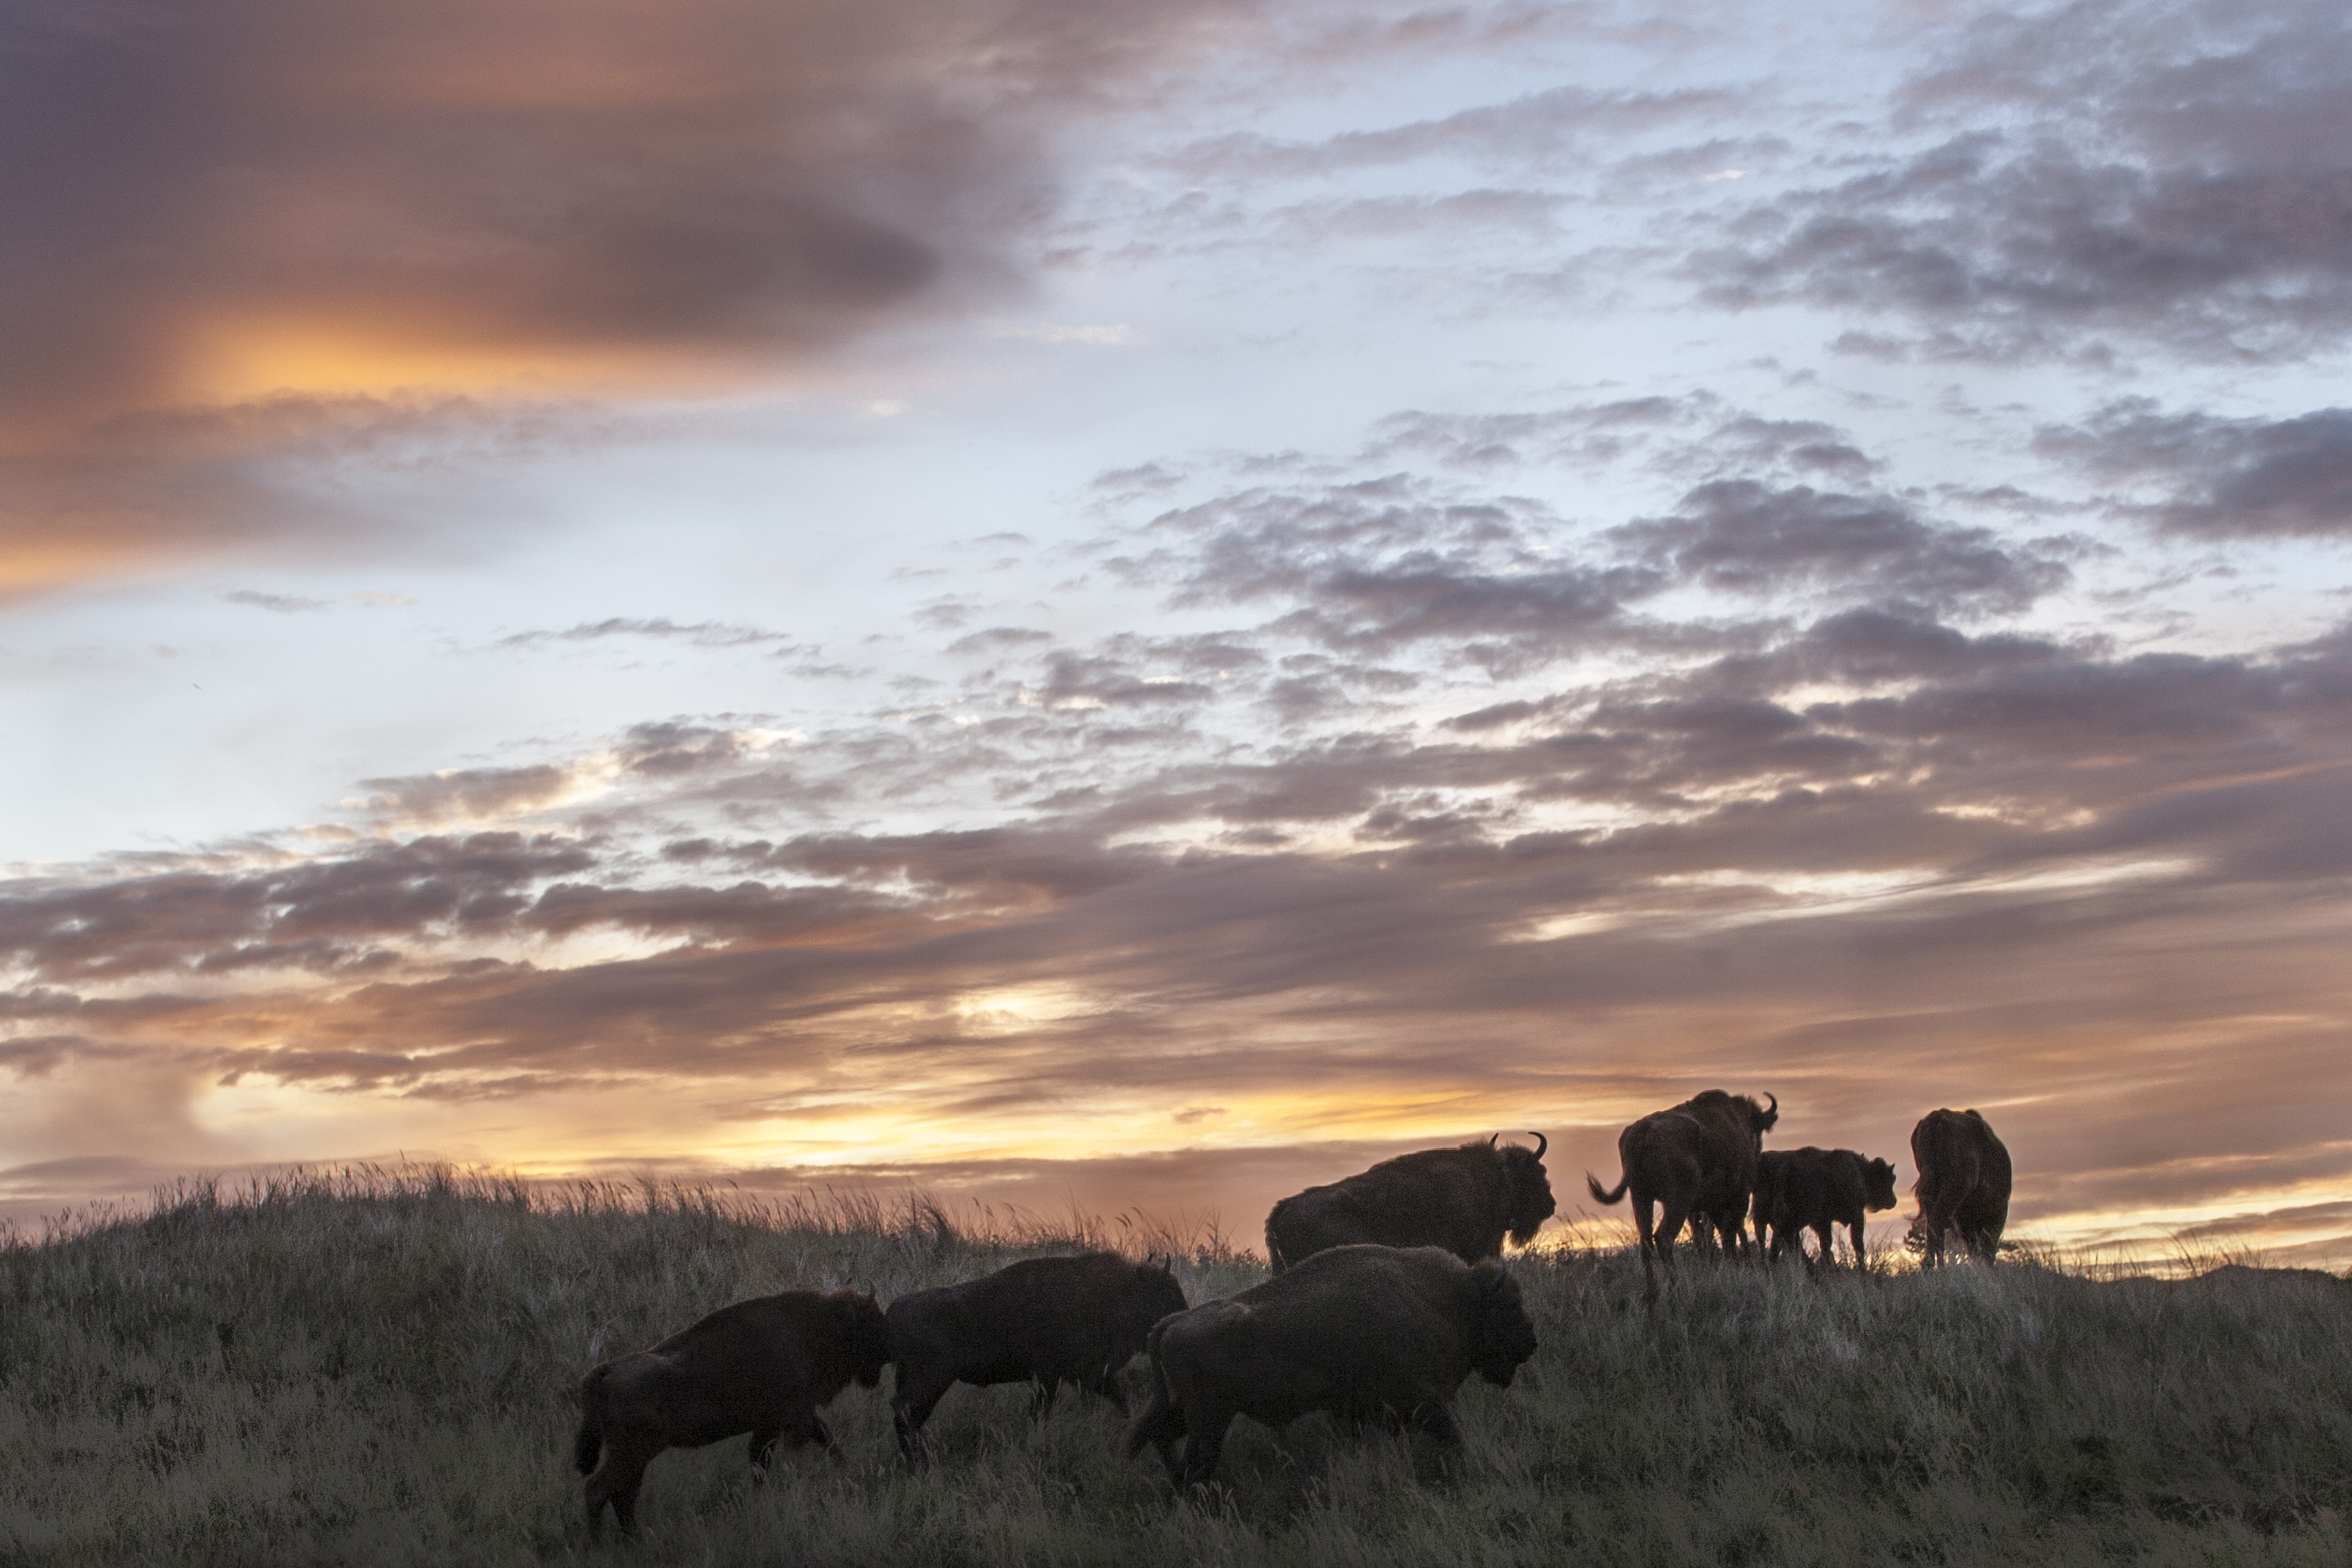 Bison_in_the_sky_CCRuudMaaskant.jpg